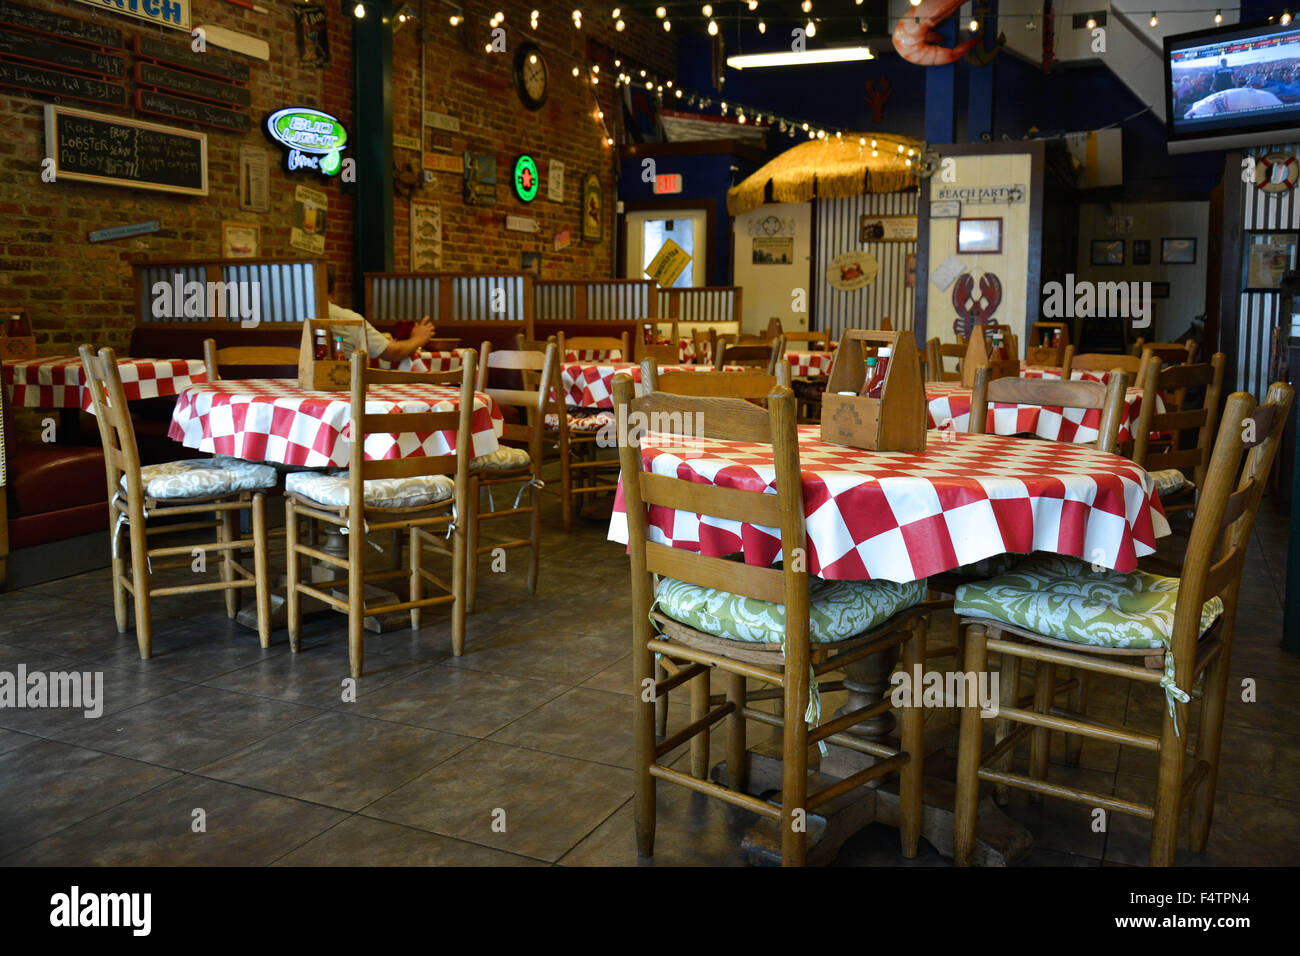 A Retro And Cool Old Historic Rustic Brick Seafood Restaurant With Menus On The Wall Fitted Red White Tablecloths